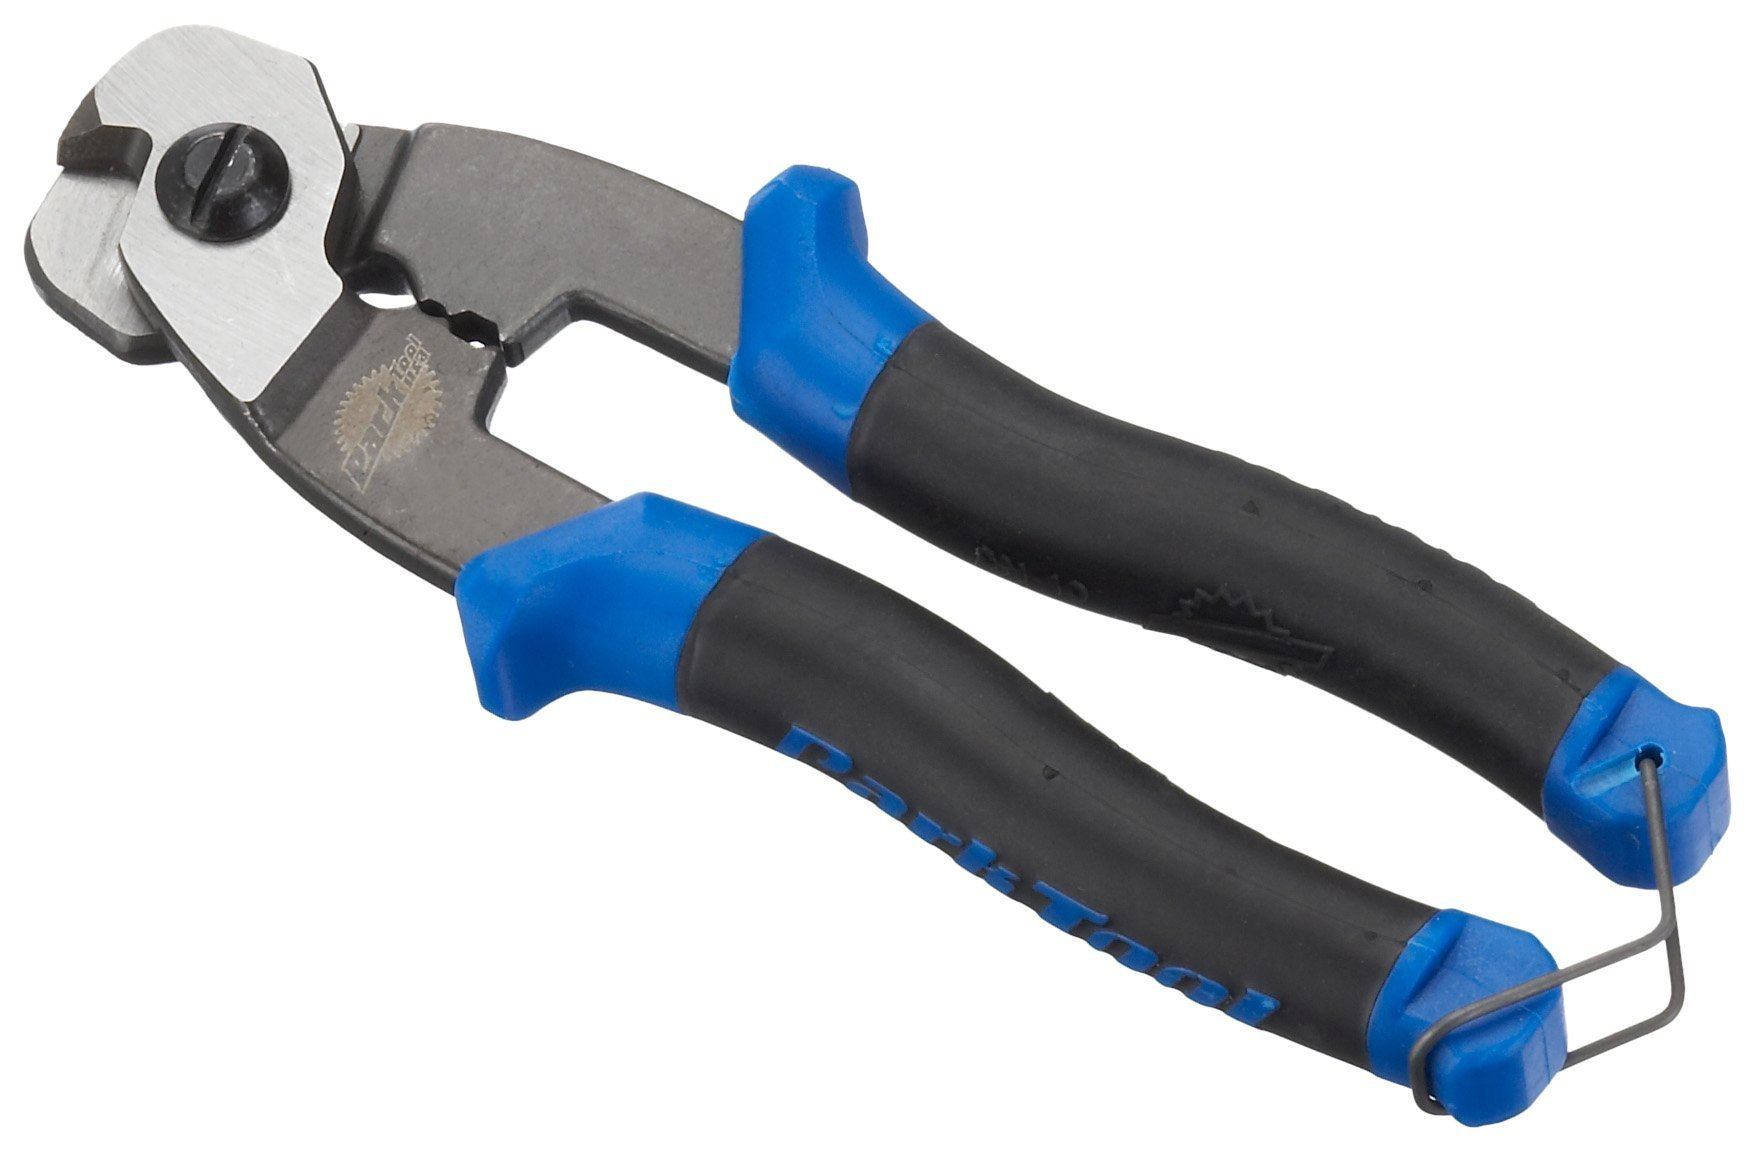 Park Tool CN-10 Professional Cable and Housing Cutter by Park Tool